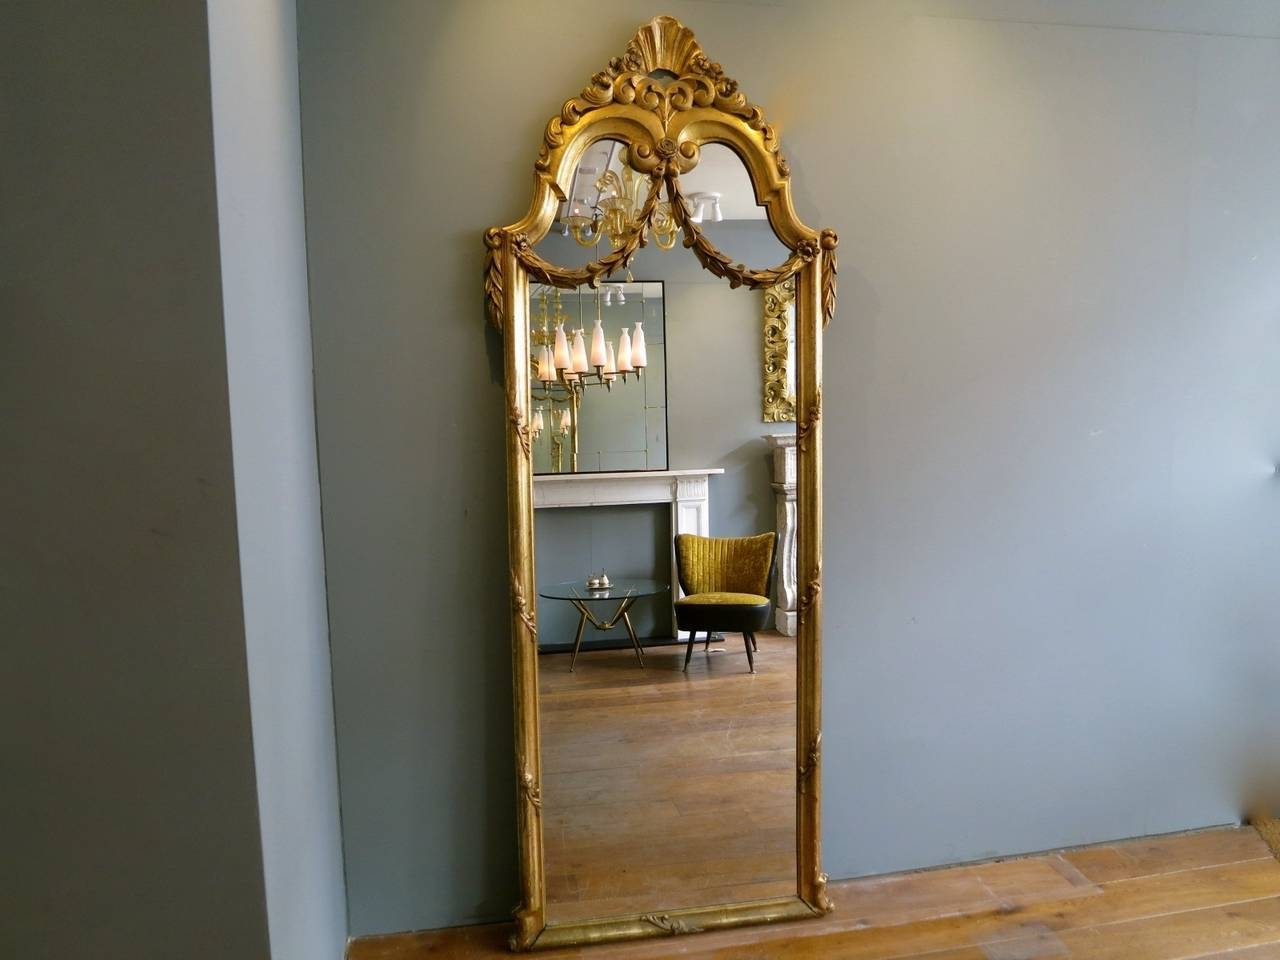 Antique French Gold Gilt Floor Standing Mirror At 1Stdibs regarding Gold Standing Mirrors (Image 5 of 15)